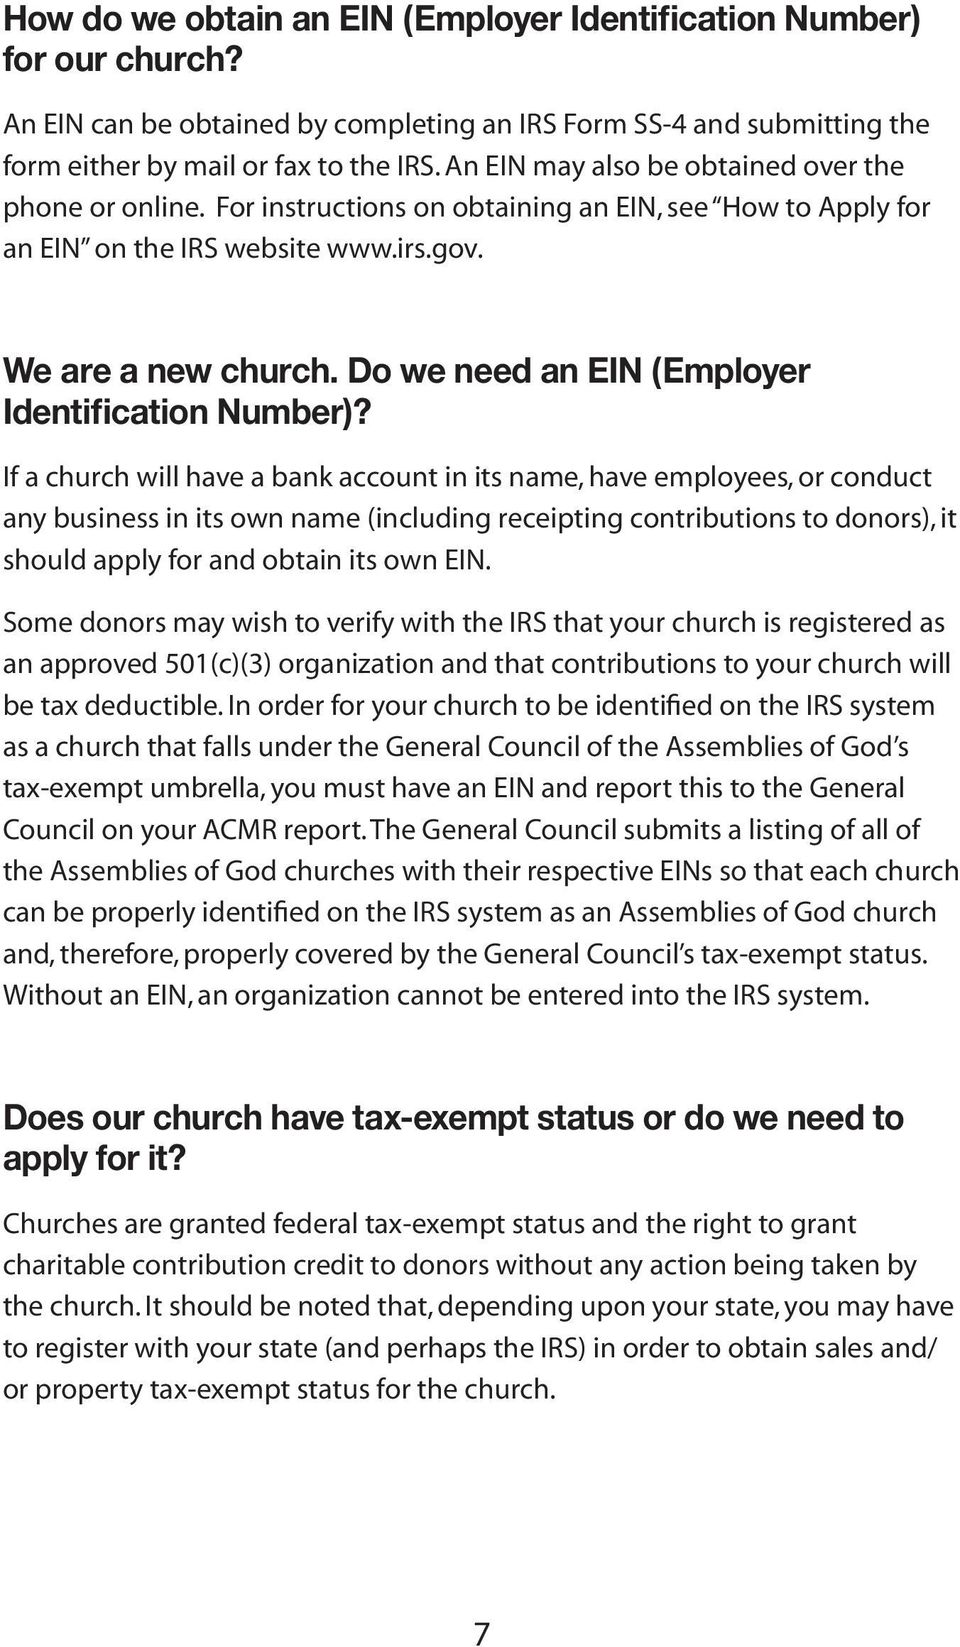 Do we need an EIN (Employer Identification Number)?